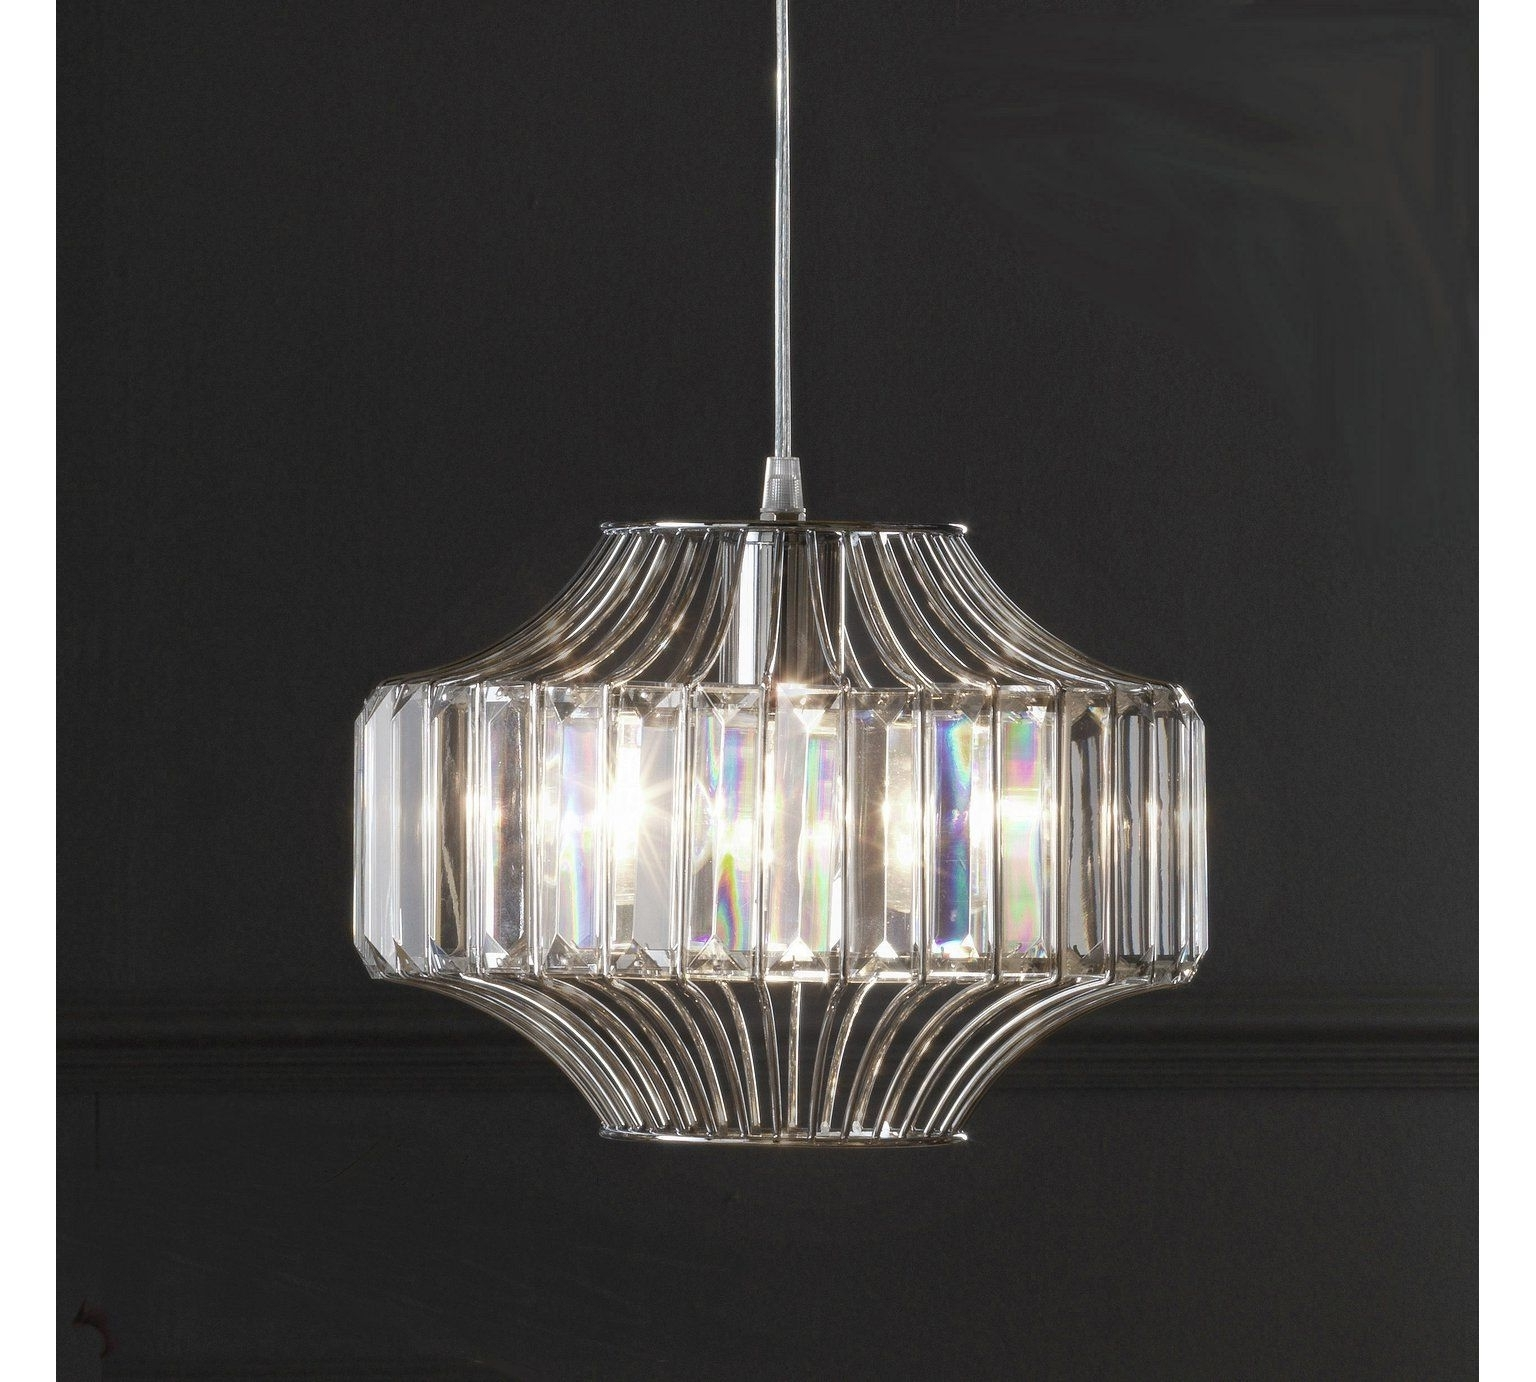 Buy Heart Of House Vienna Glass/chrome Beaded Wire Pendant Light At Inside Latest Argos Outdoor Wall Lighting (View 18 of 20)